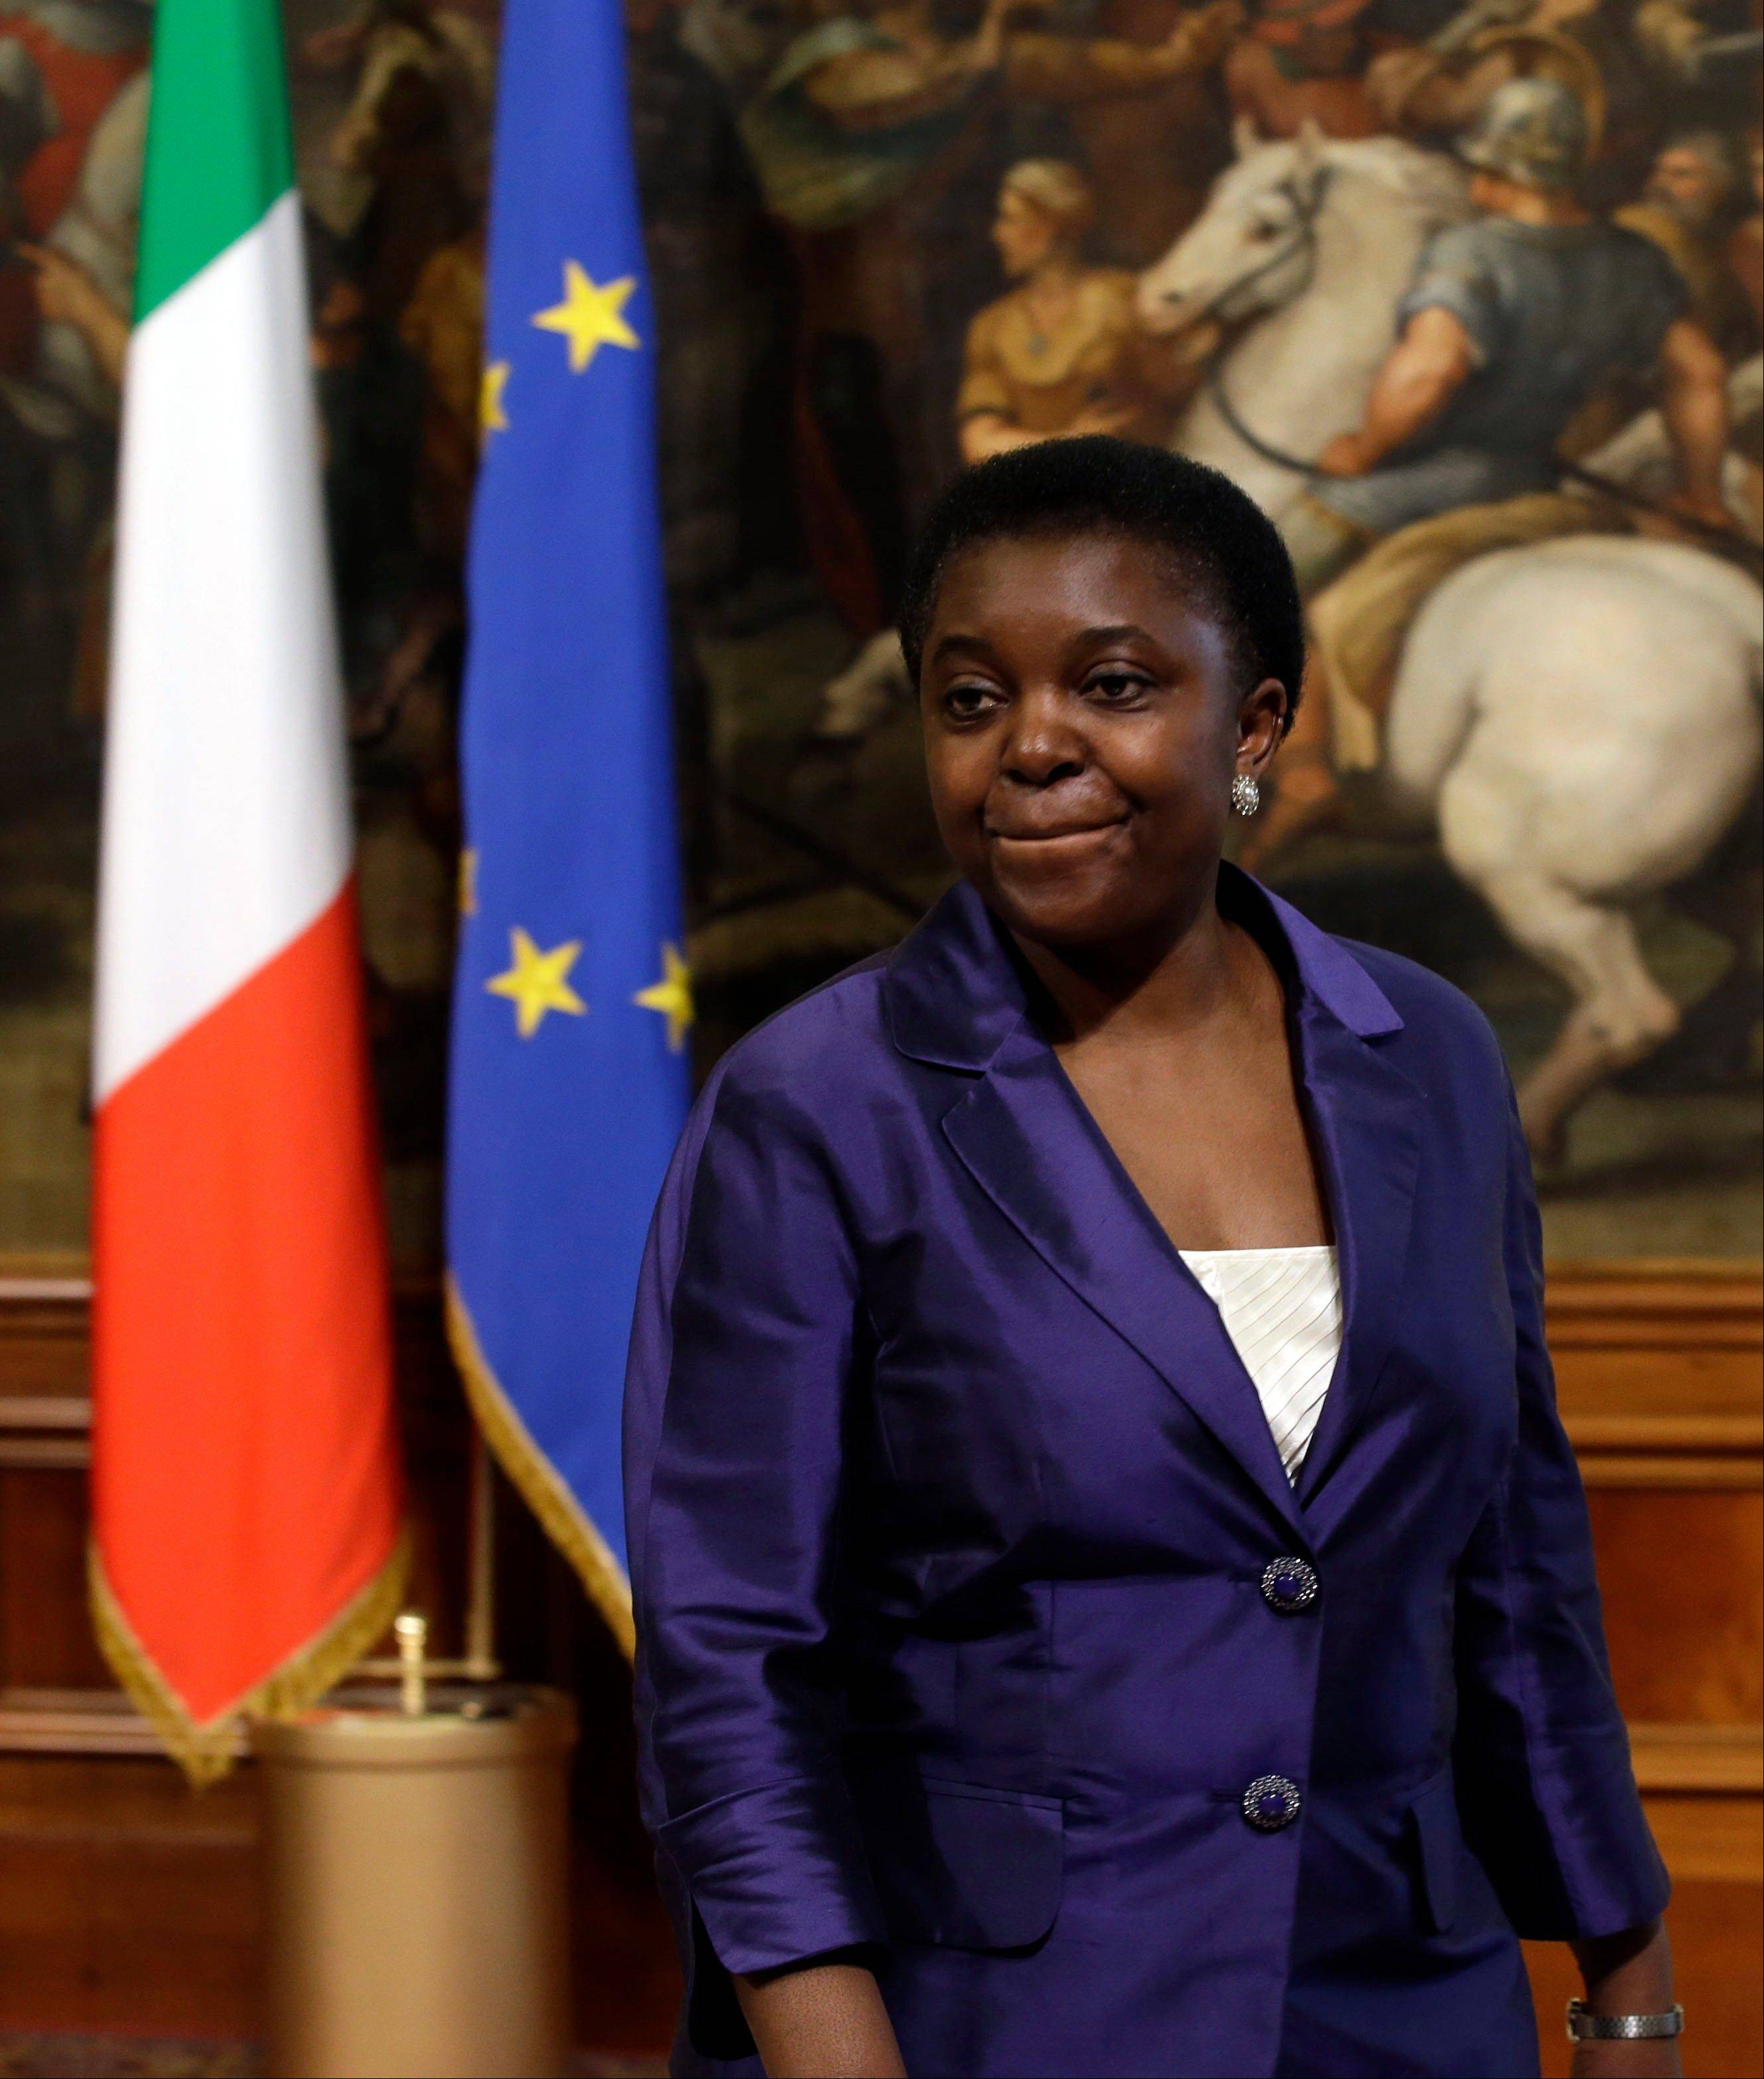 The appointment of Italy�s first black cabinet minister, Cecile Kyenge, was initially hailed as a giant step forward for a country that has long been ill at ease with its increasing immigrant classes. Instead it has exposed Italy�s ugly race problem. Kyenge, 48, was born in Congo and moved to Italy three decades ago to study medicine.